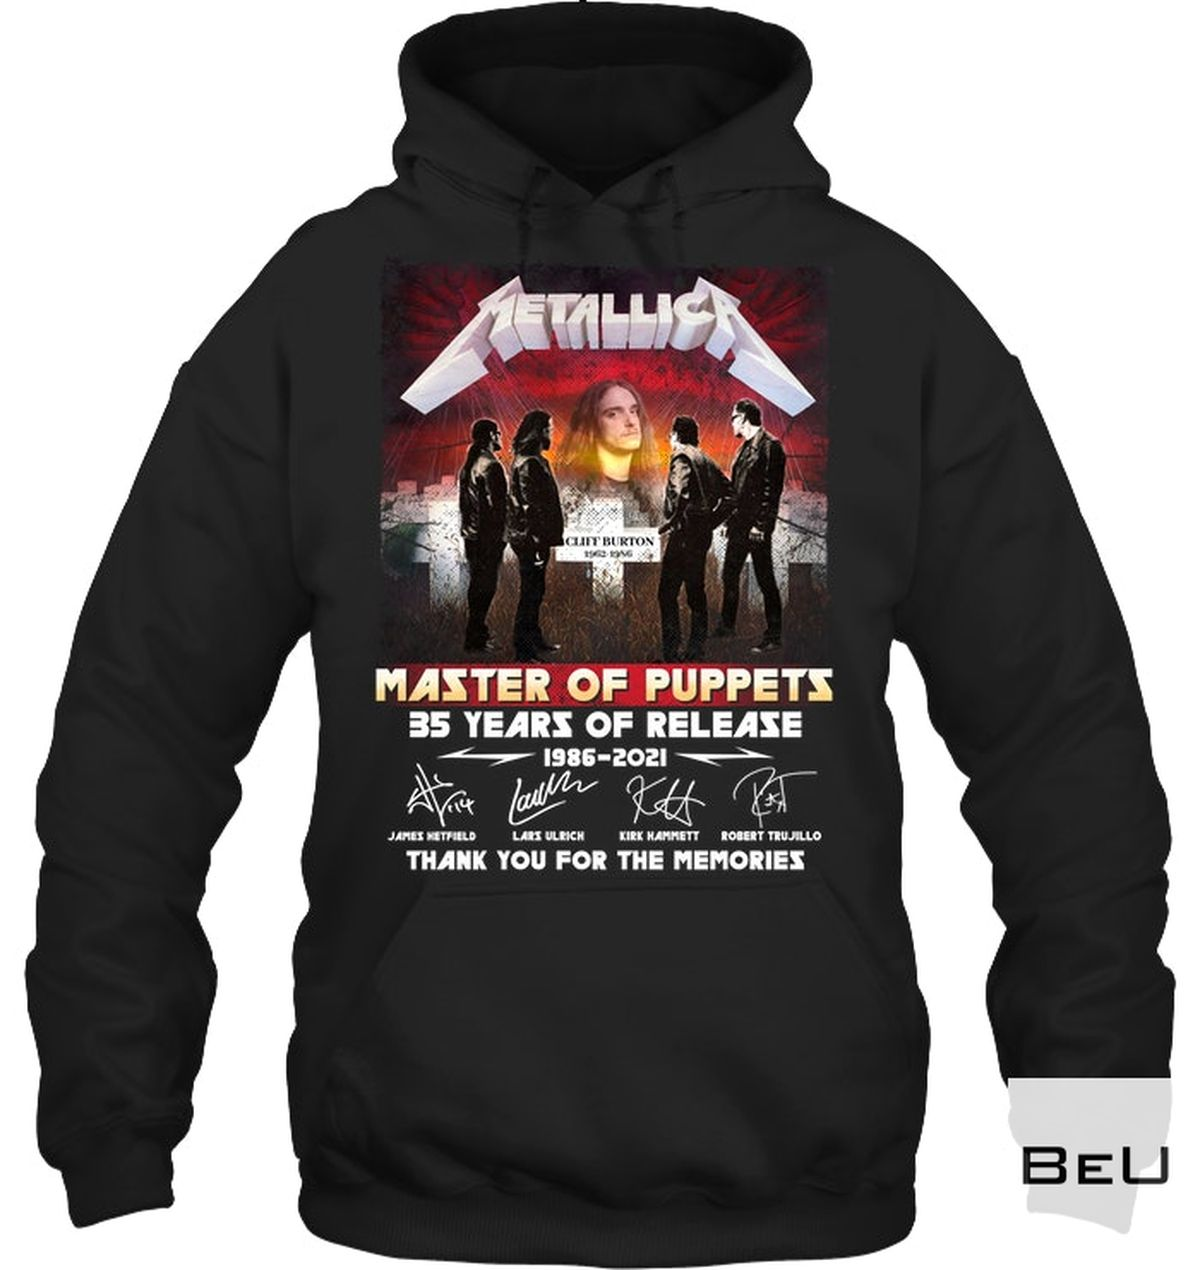 Free Ship Metallica Master Of Puppets 35 Years Of Release 1986-2021 Shirt